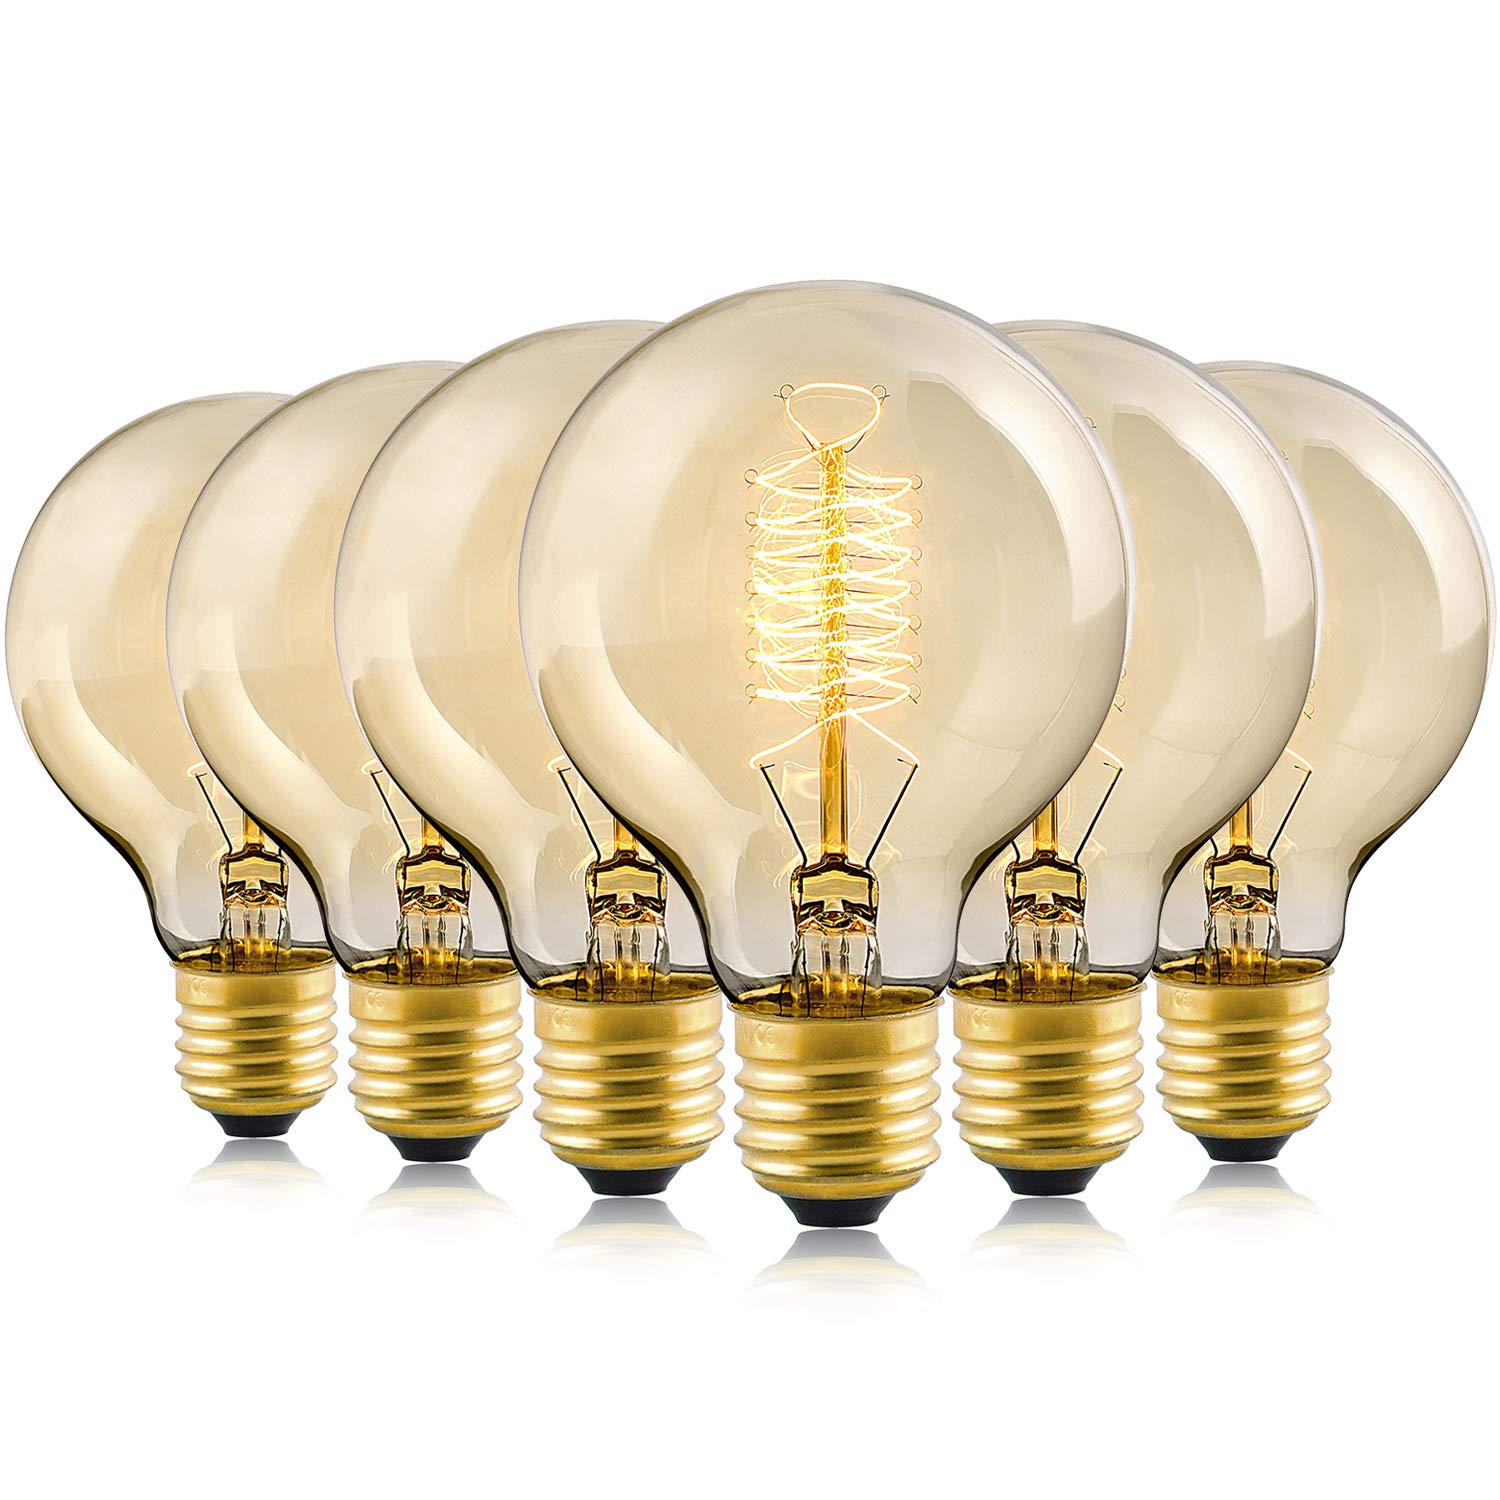 Edison Bulb, 60Watt 2200K Warm White Vintage Incandescent Edison Light Bulbs, E26 Base 230 Lumens Dimmable, G80 Antique Filament Style Decorative Lightbulbs (6 Pack)